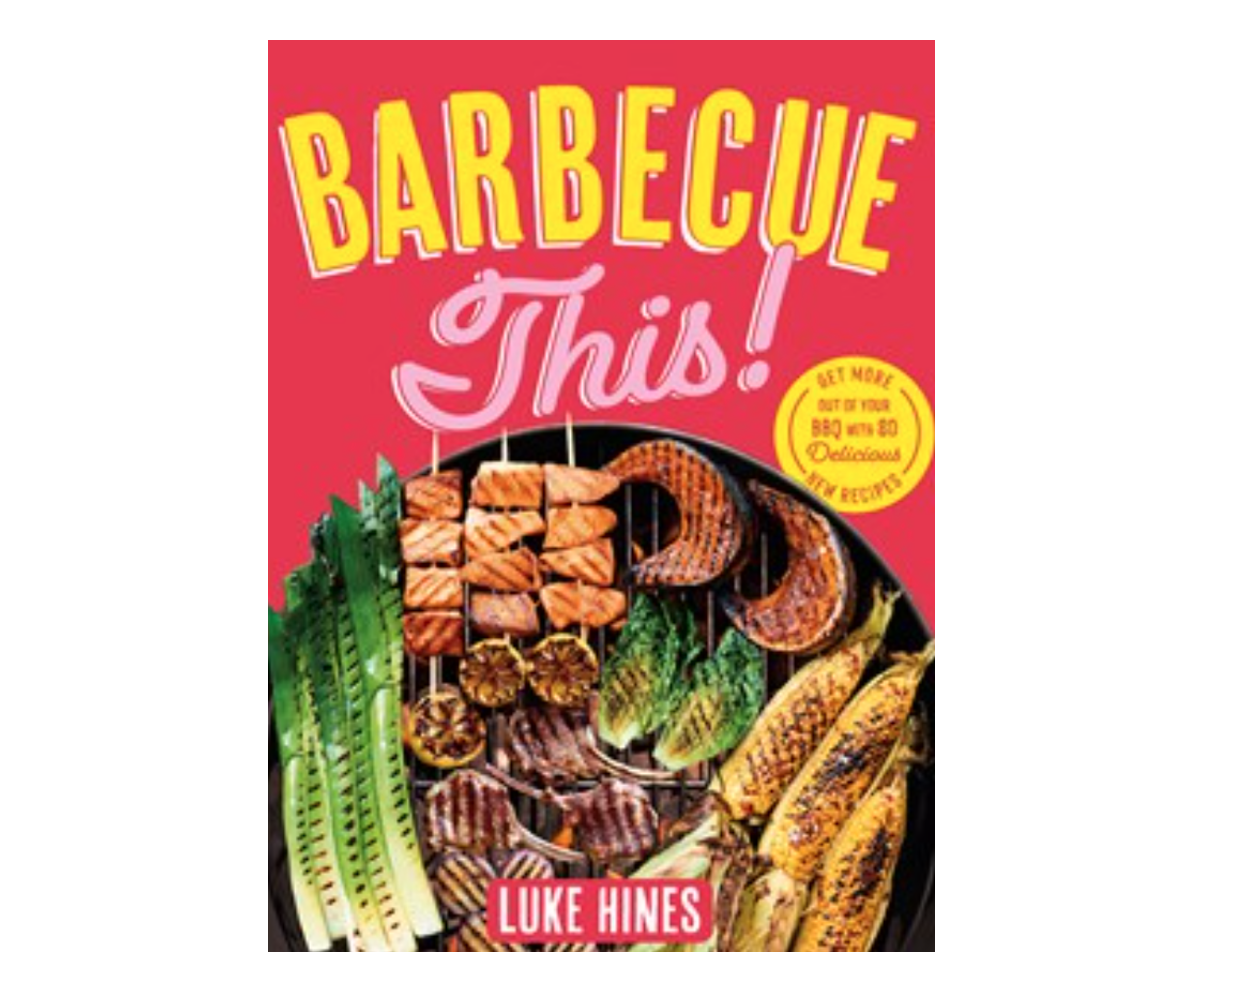 New cookbook 'BBQ This!' by Luke Hines released for pre-sale Image